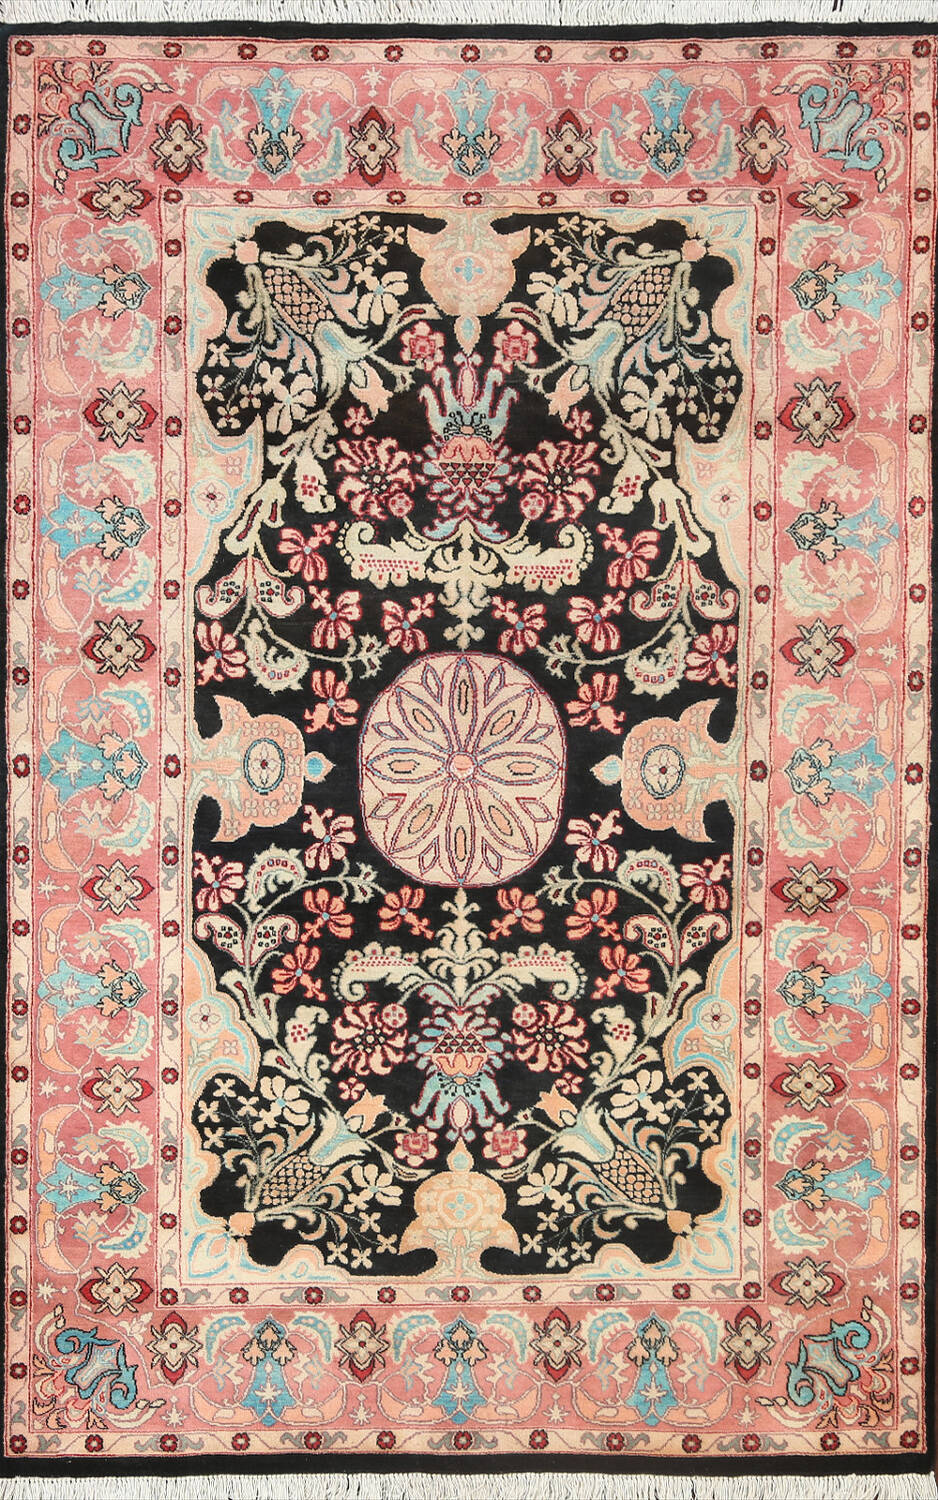 Vegetable Dye Floral Tabriz Oriental Area Rug 4x6 image 1